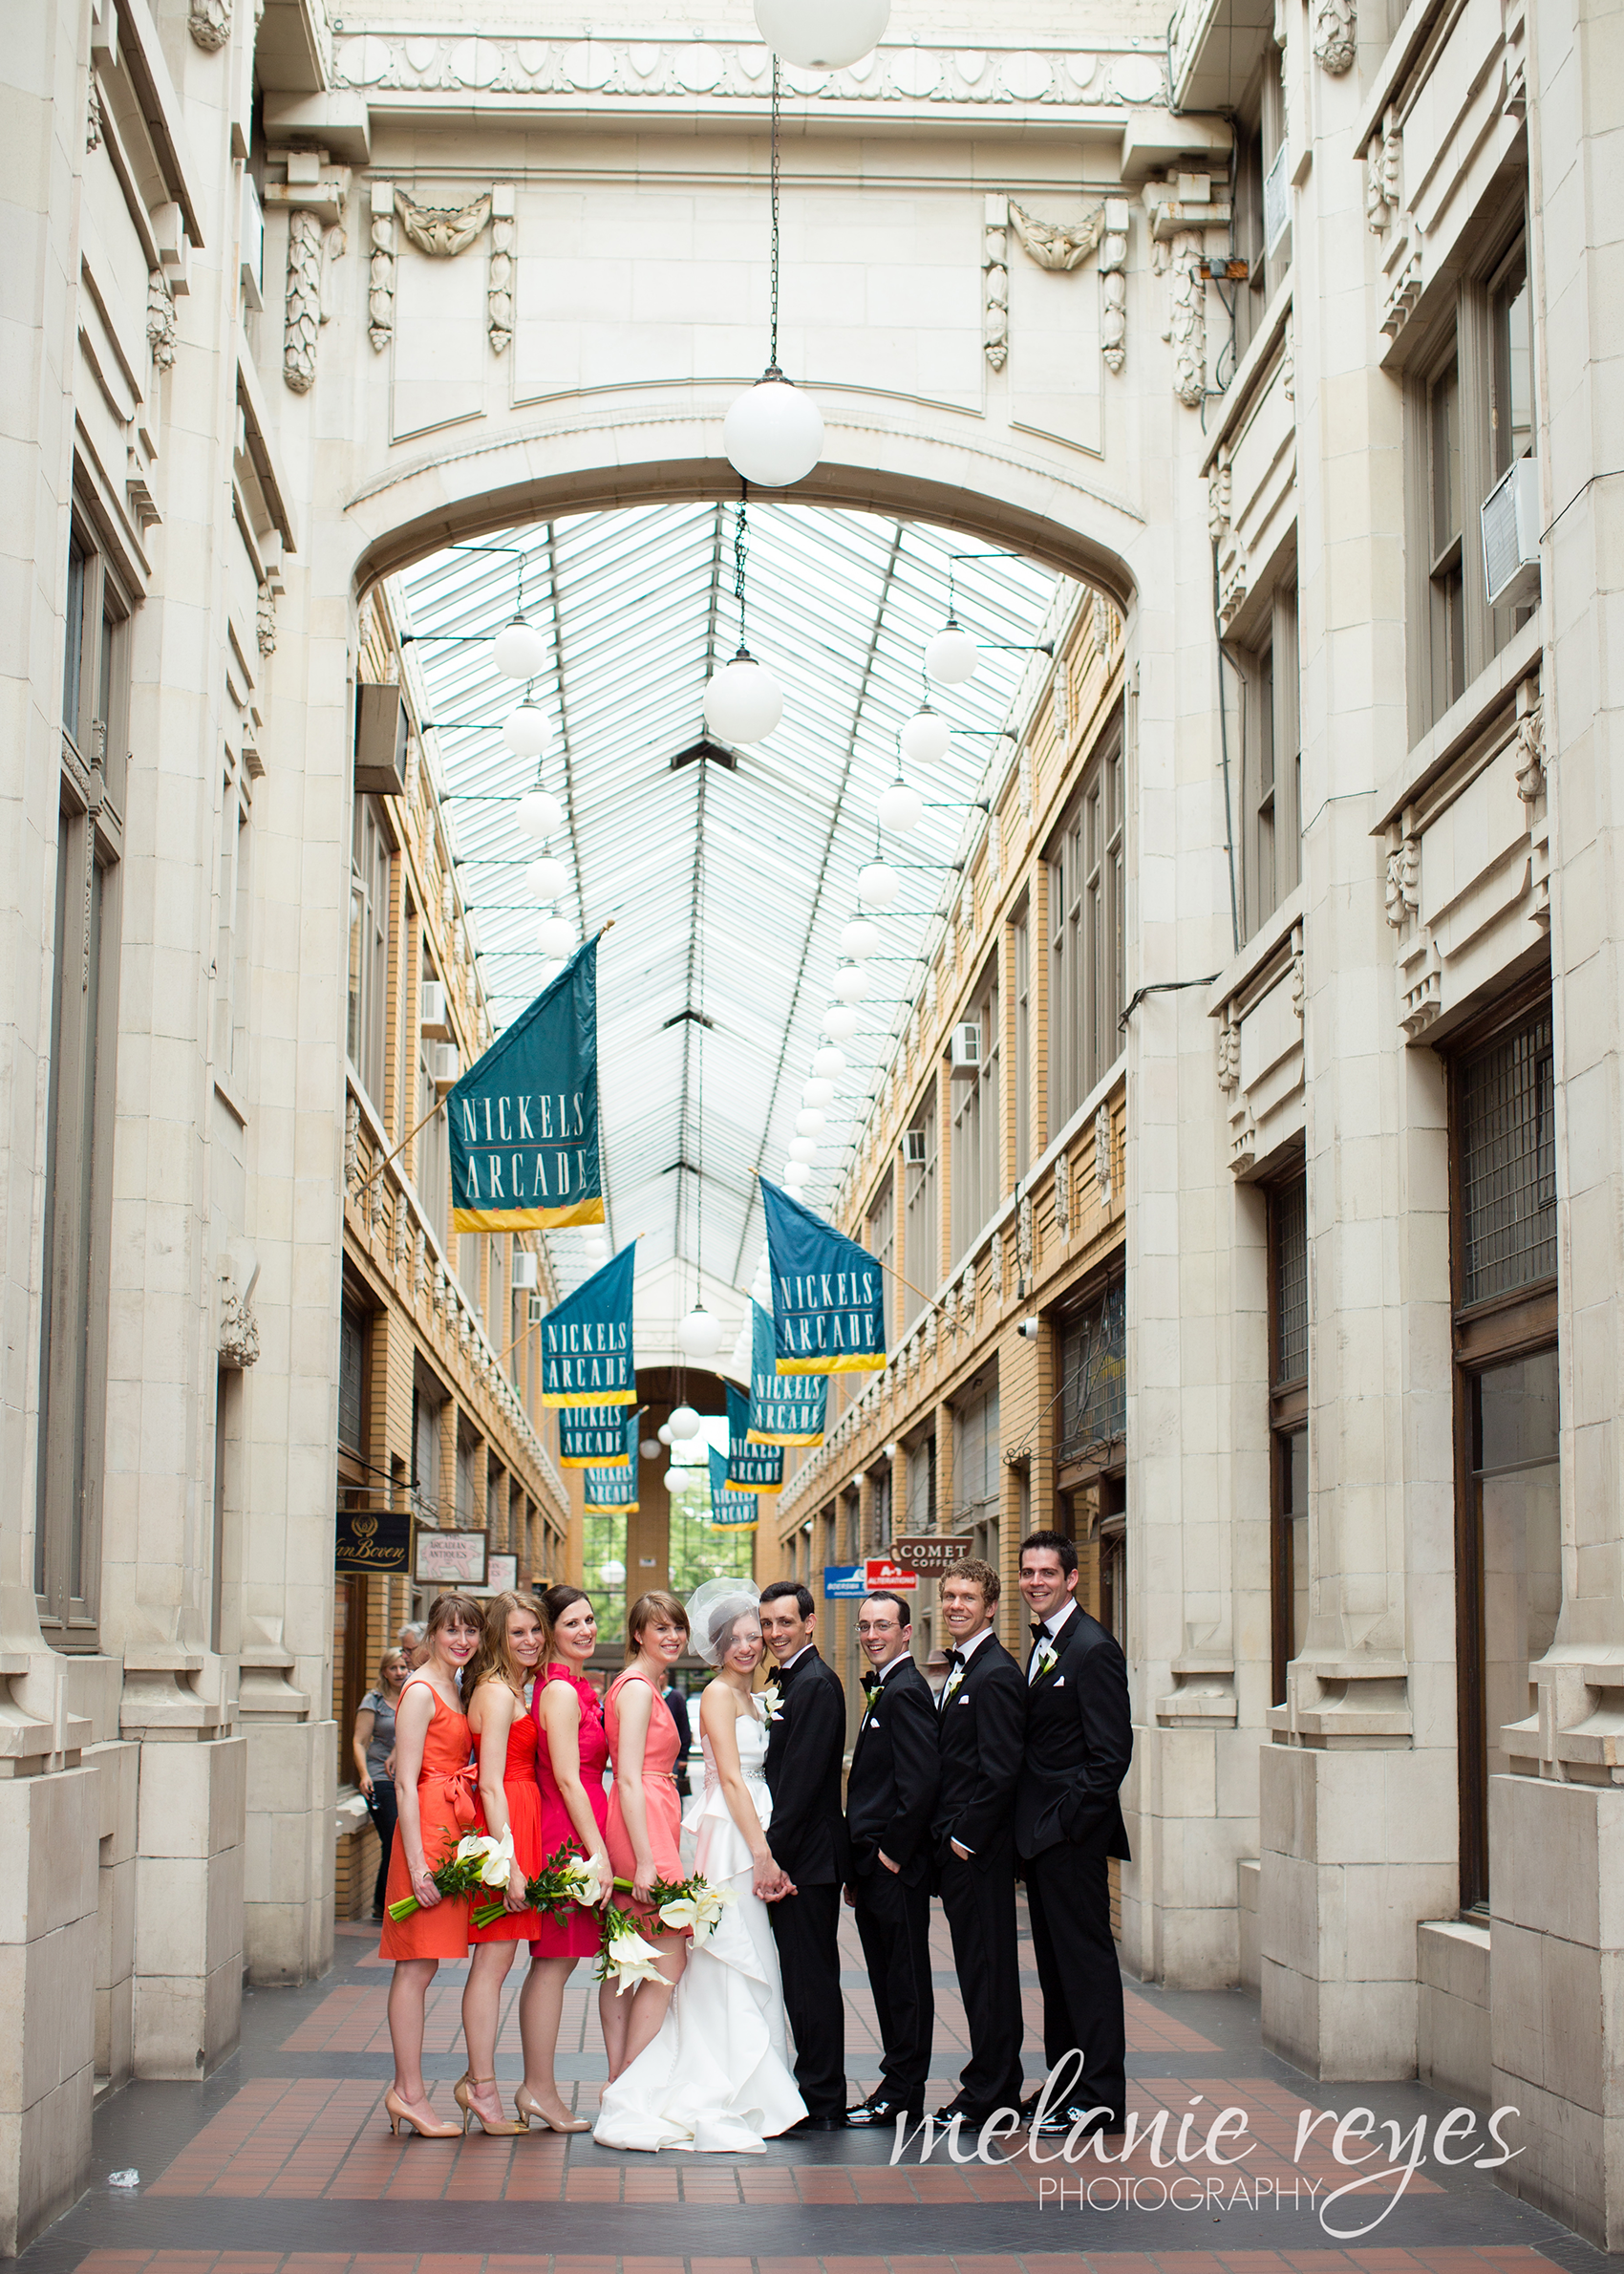 Wedding Nichols Arcade